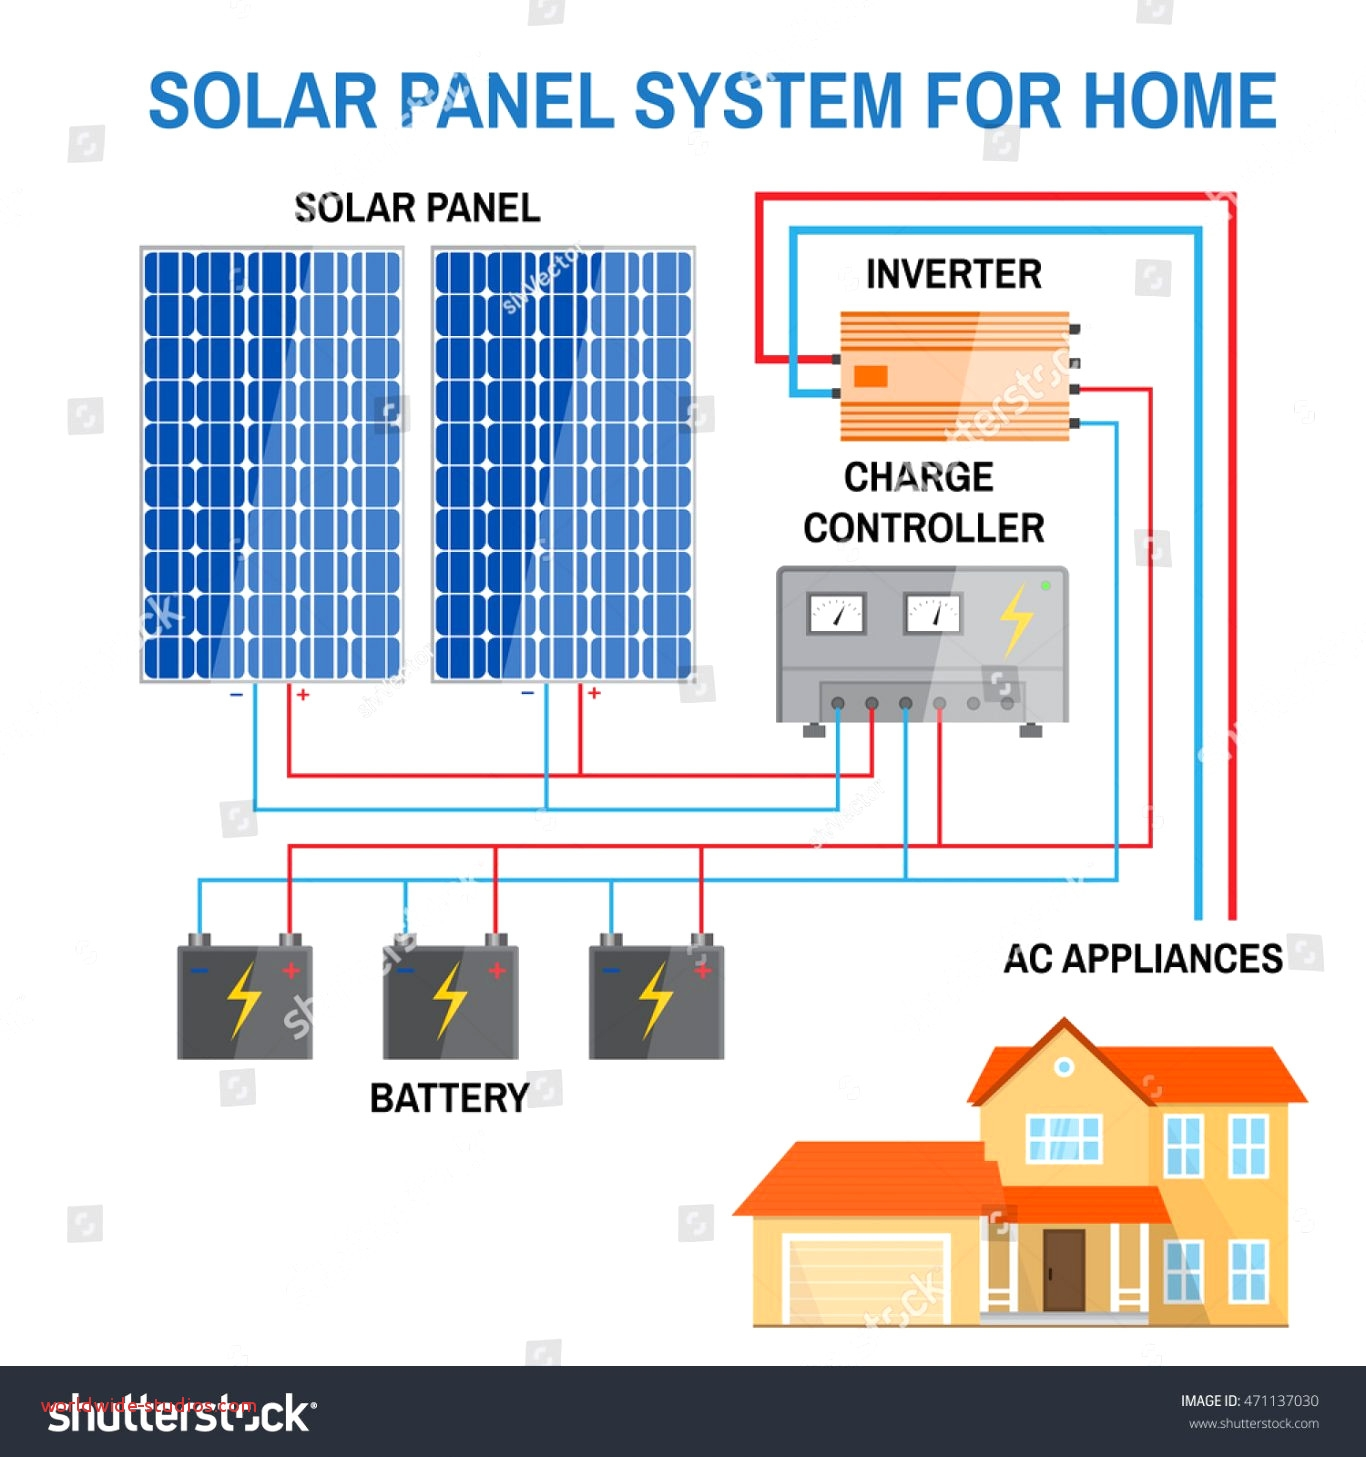 solar panel installation wiring diagram wiring diagrams for solar panel installation solar panel grid tie wiring diagram | free wiring diagram #9